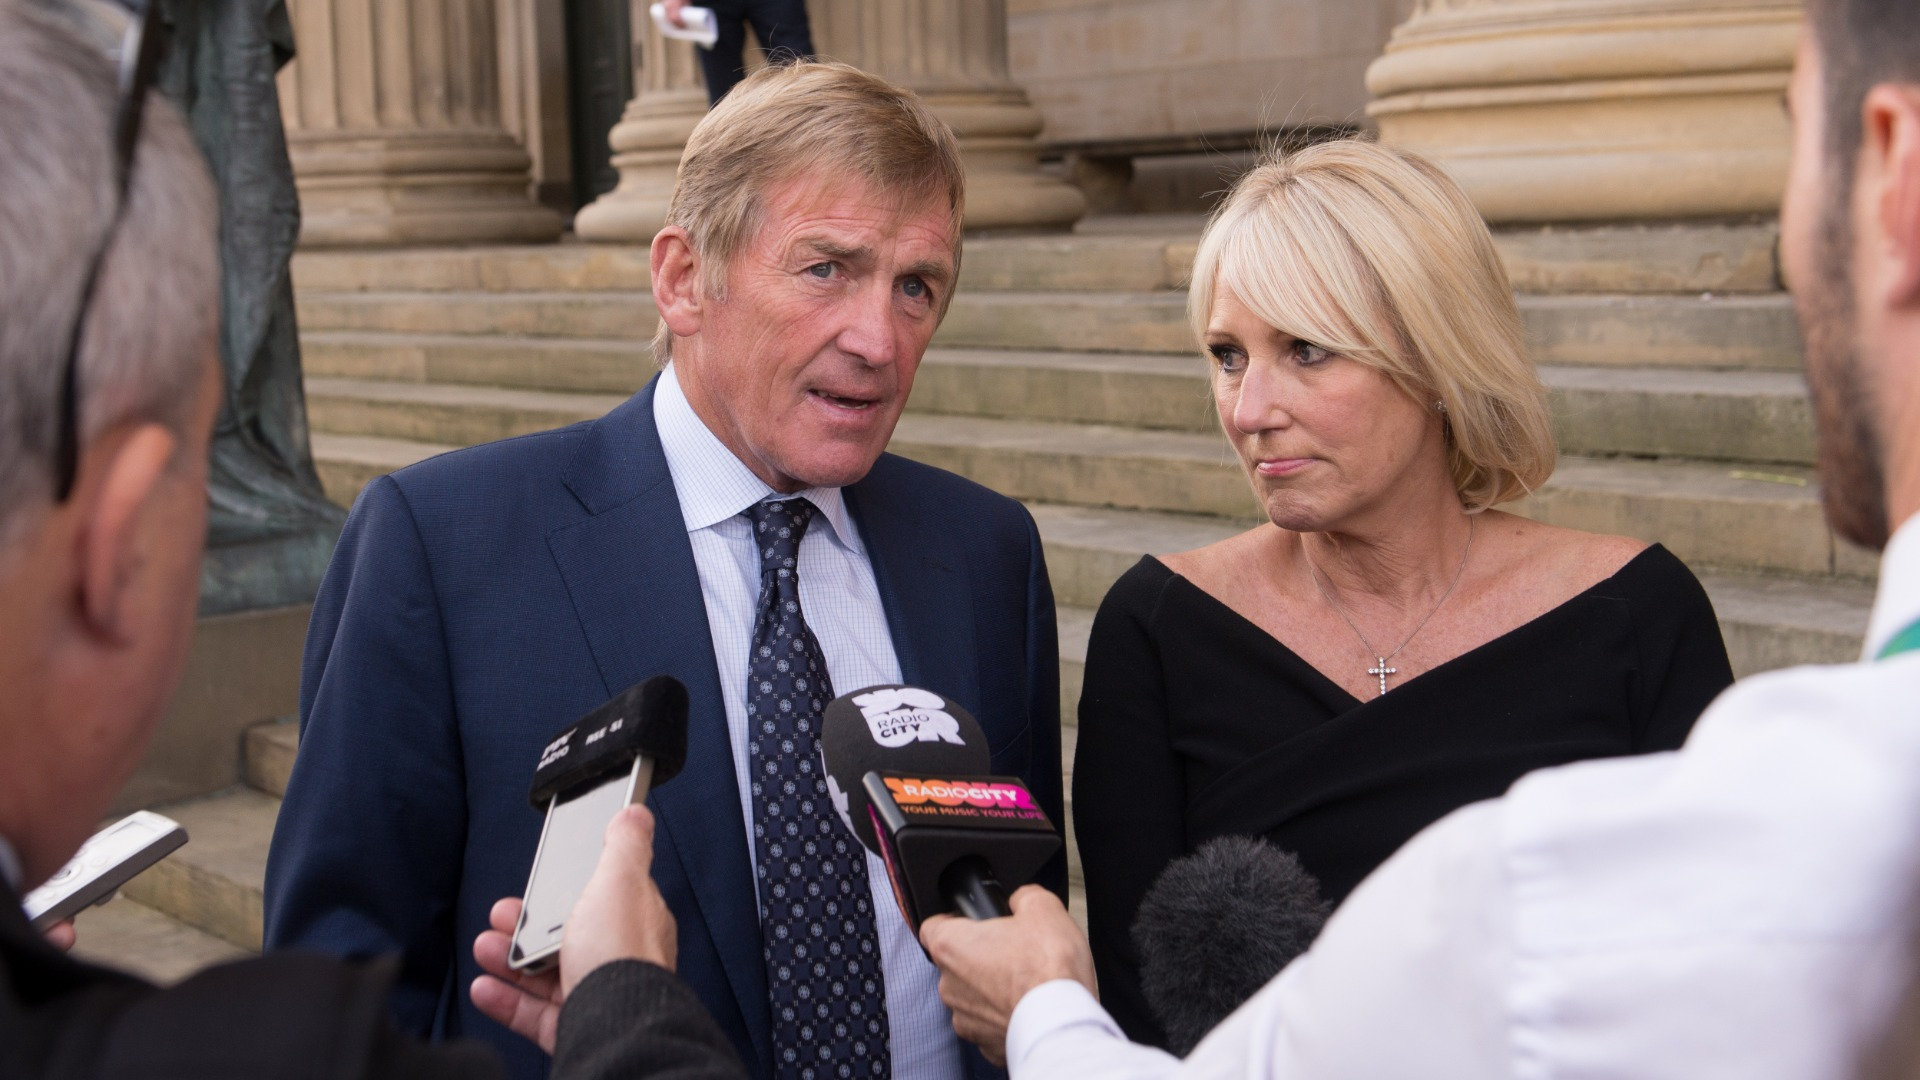 Dalglish 'hugely disappointed' but proud of families and fans after Hillsborough verdict